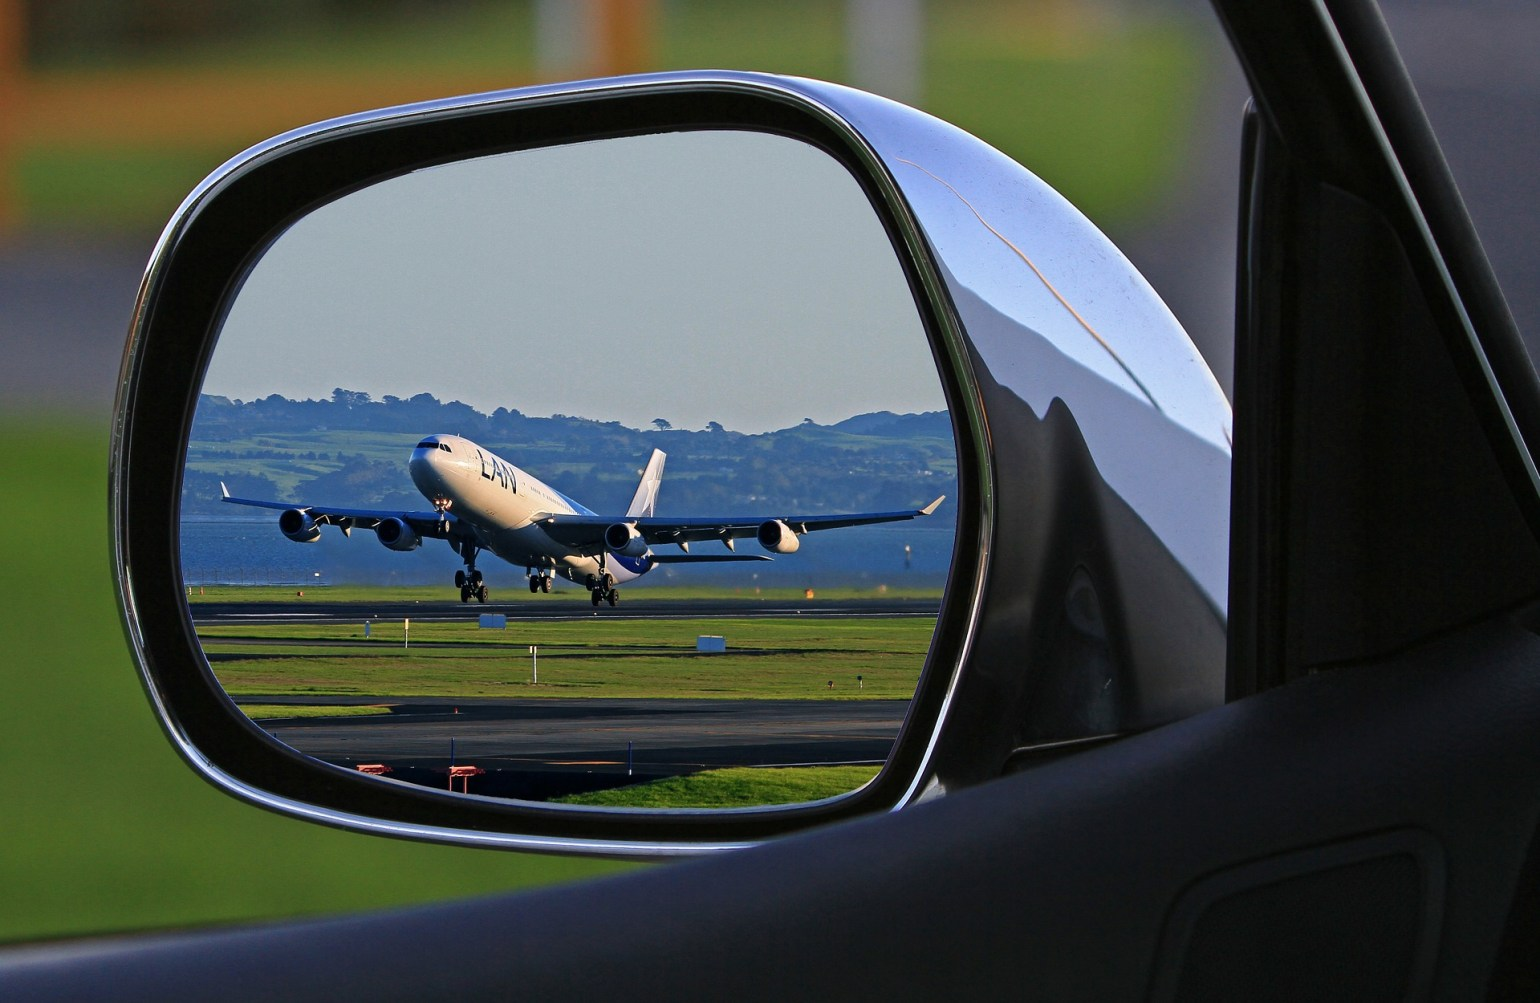 rearview mirror plane